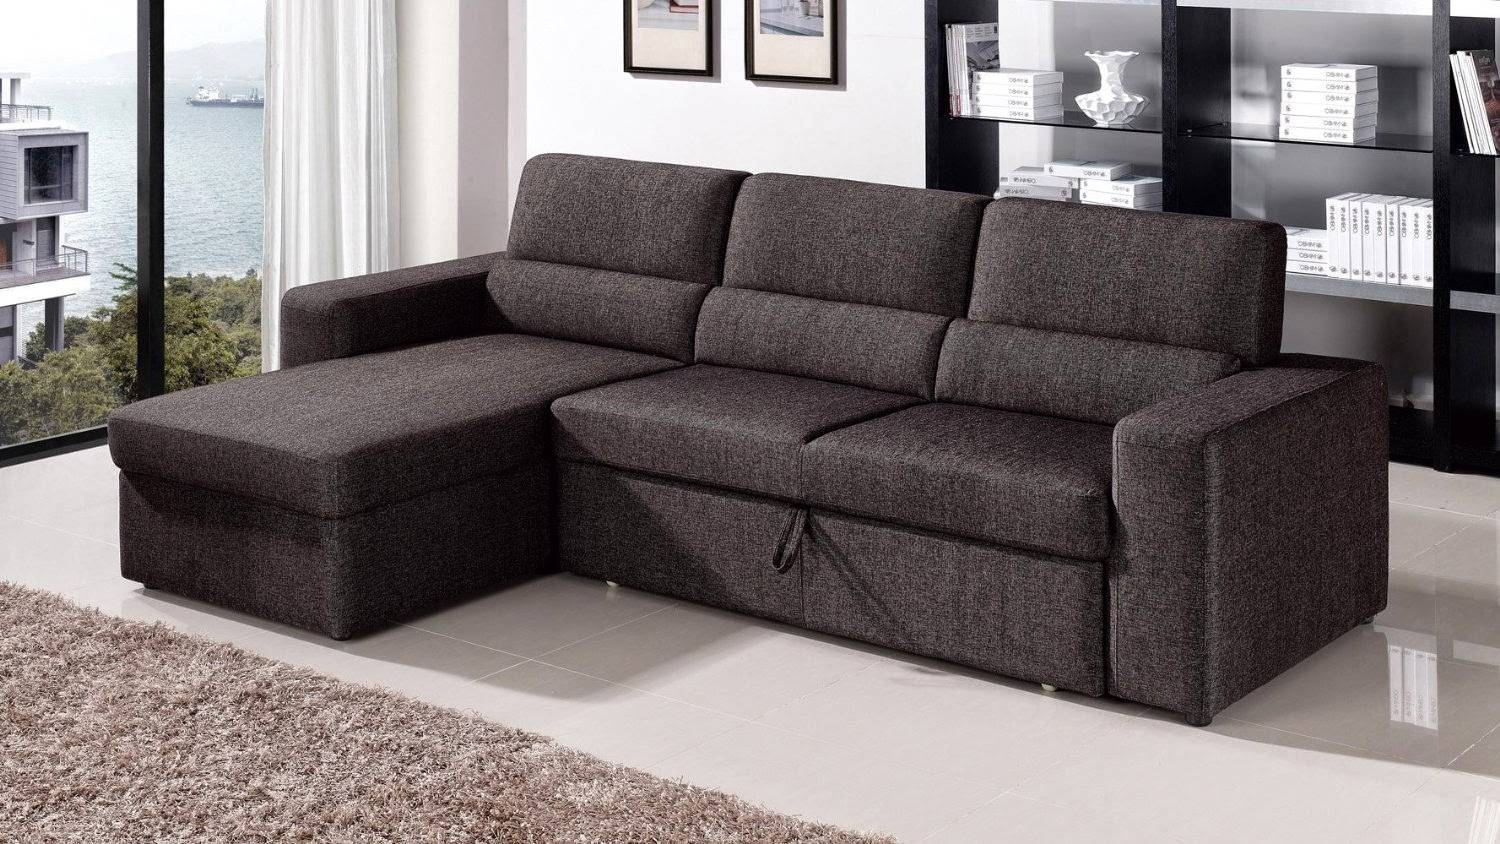 Inspirational Sectional Sofa With Pull Out Sleeper 19 About for European Sectional Sofas (Image 16 of 30)